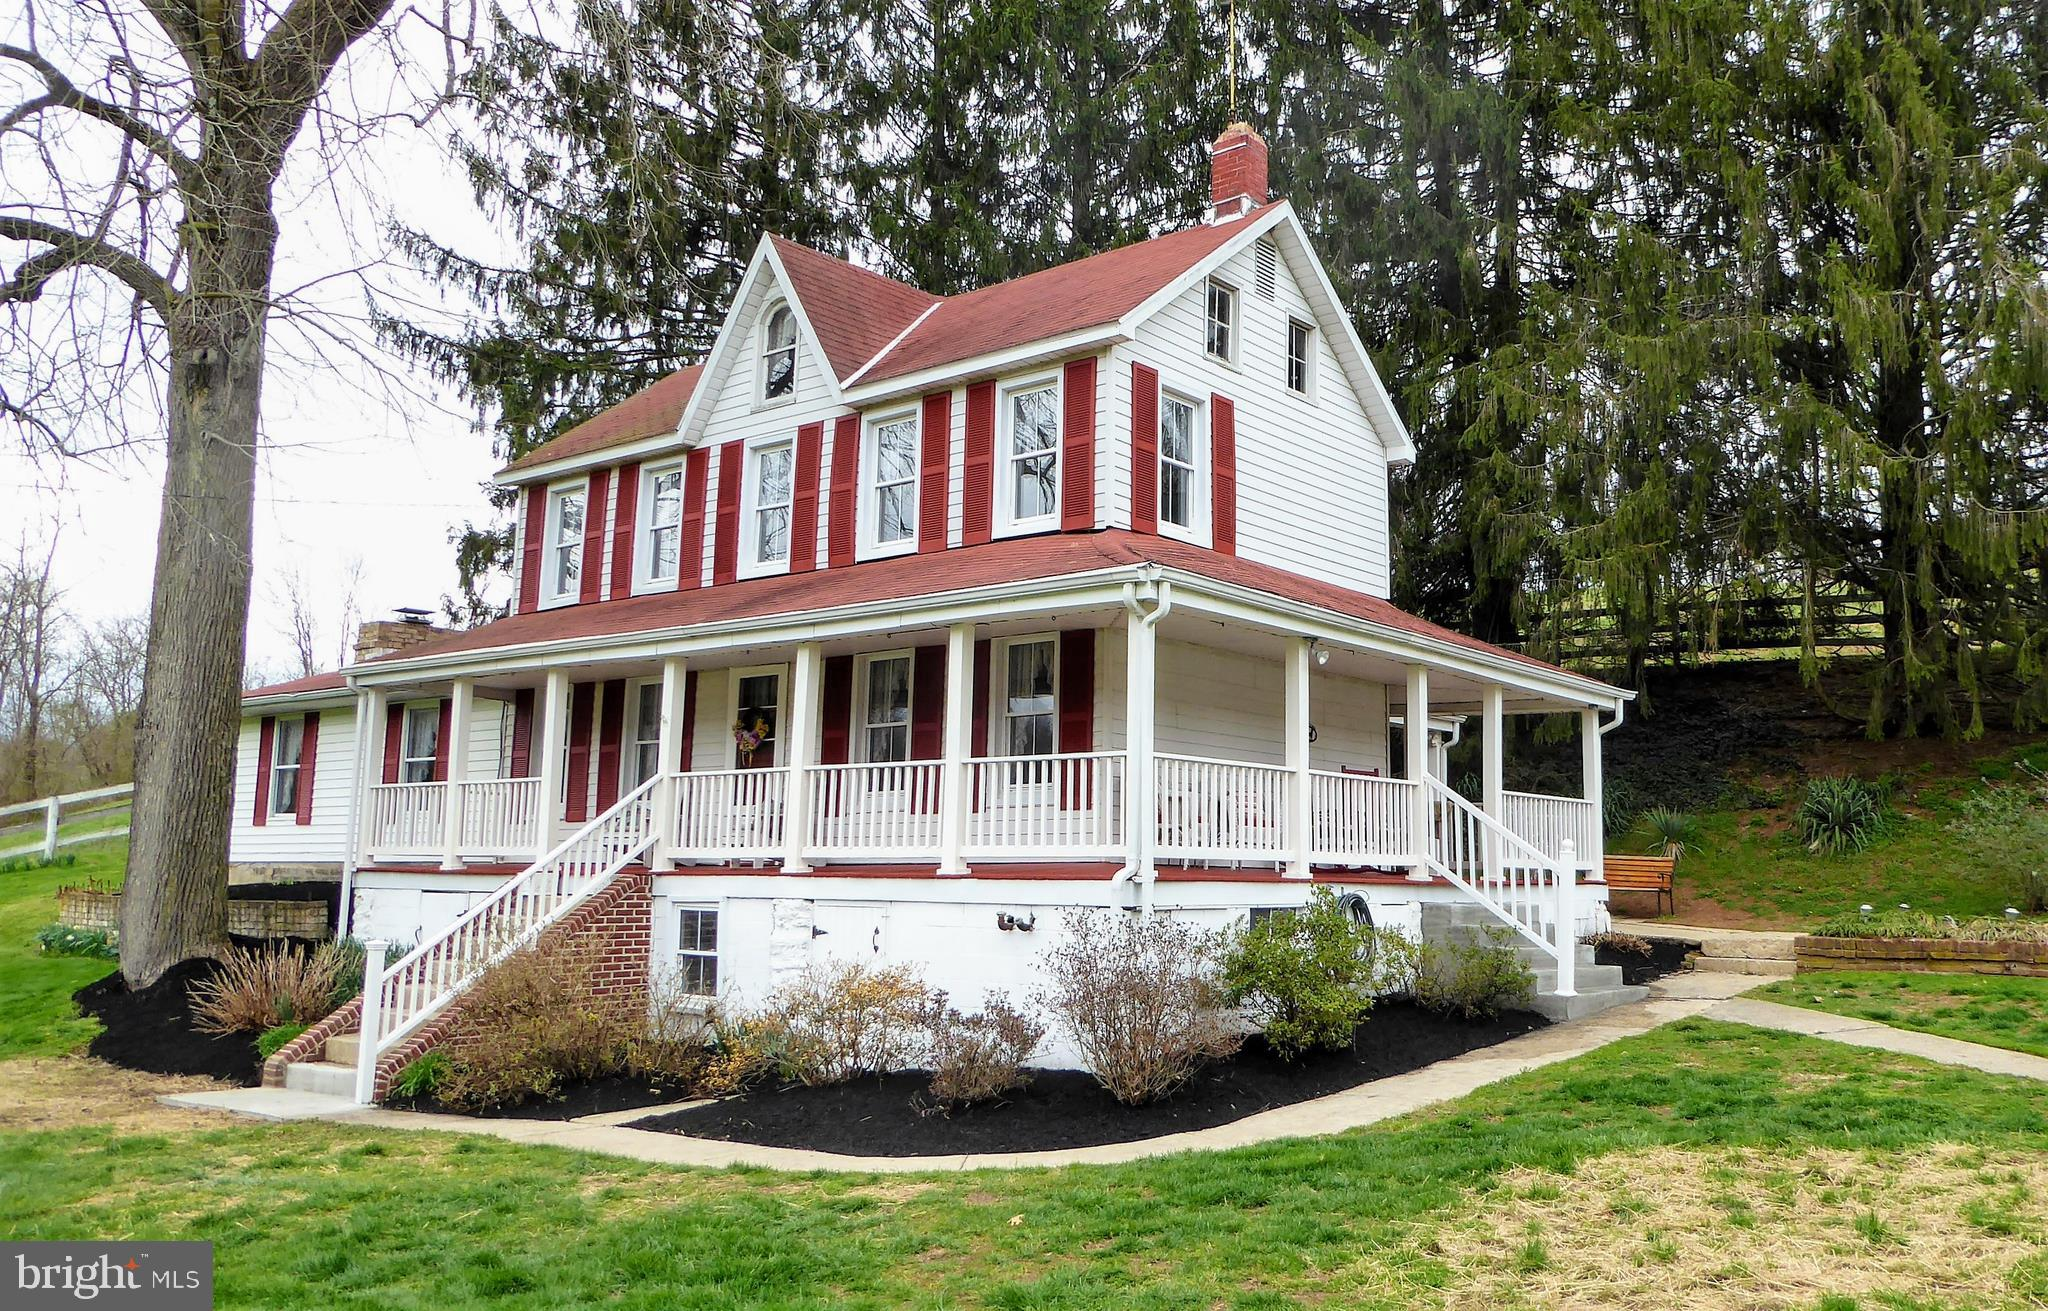 Come take a look at this lovely equestrian property.  The house is updated and offers a nice flowing